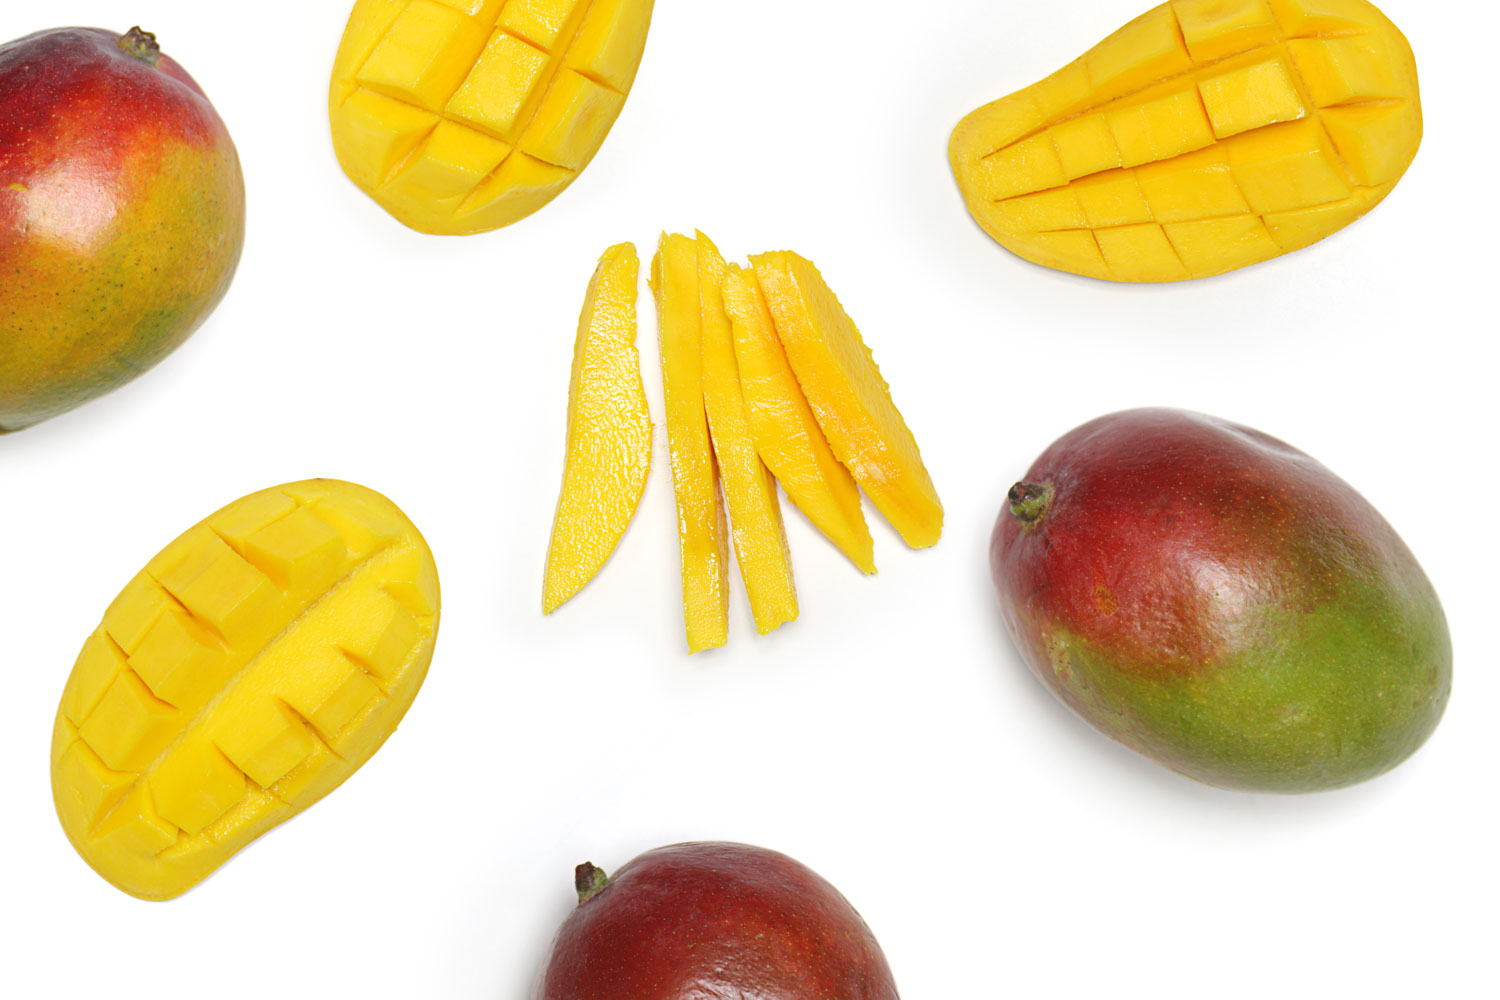 How to cut a mango in 7 steps or less video sharis berries blog how to cut a mango in 7 steps or less video ccuart Choice Image